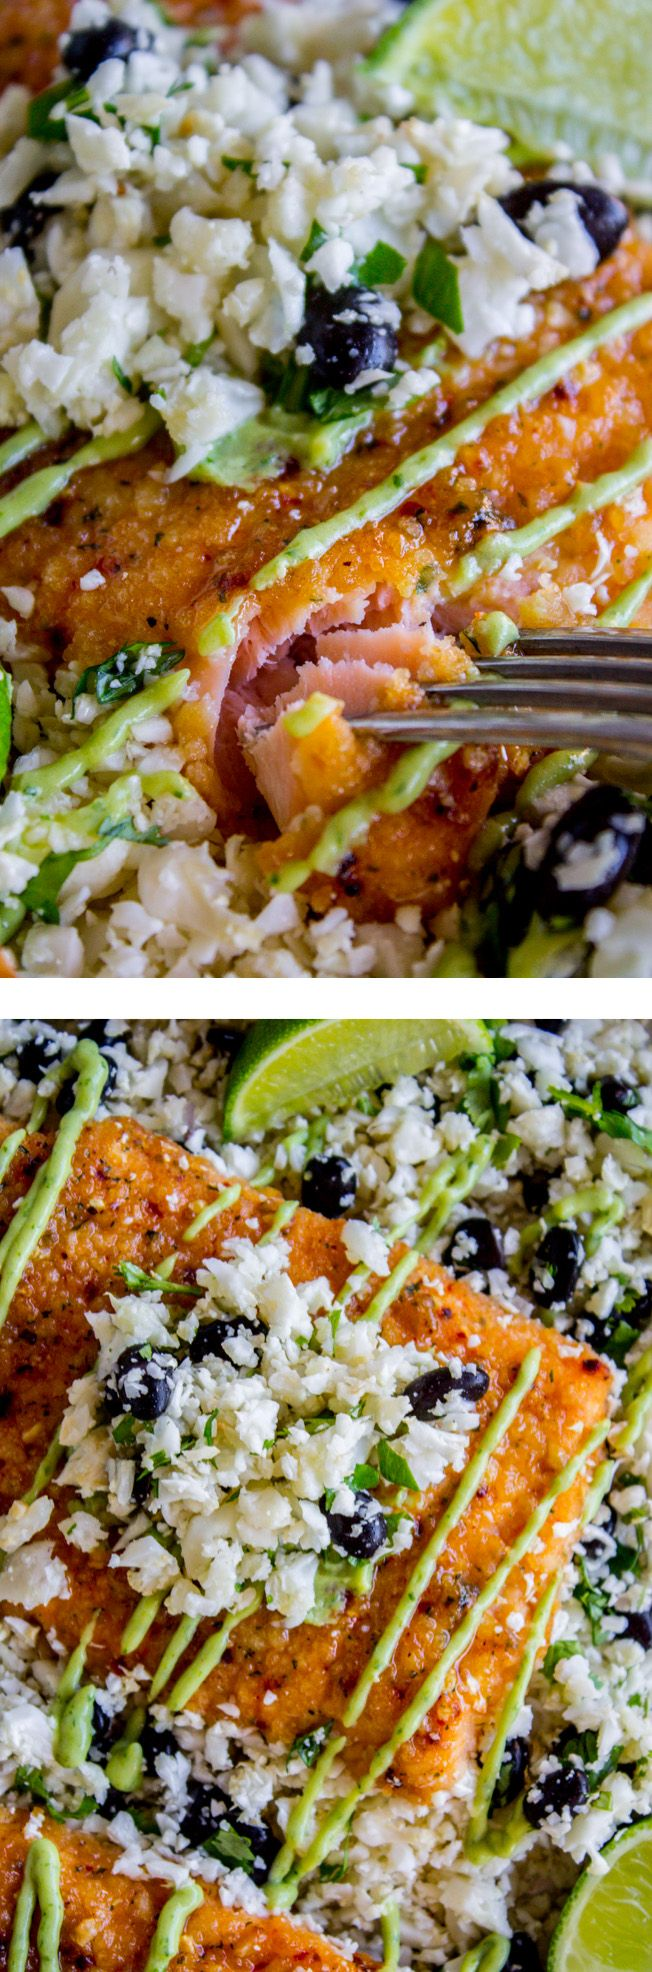 Honey Chipotle Crusted Salmon paired with Cauliflower Rice is the perfect healthy 30 minute dinner!